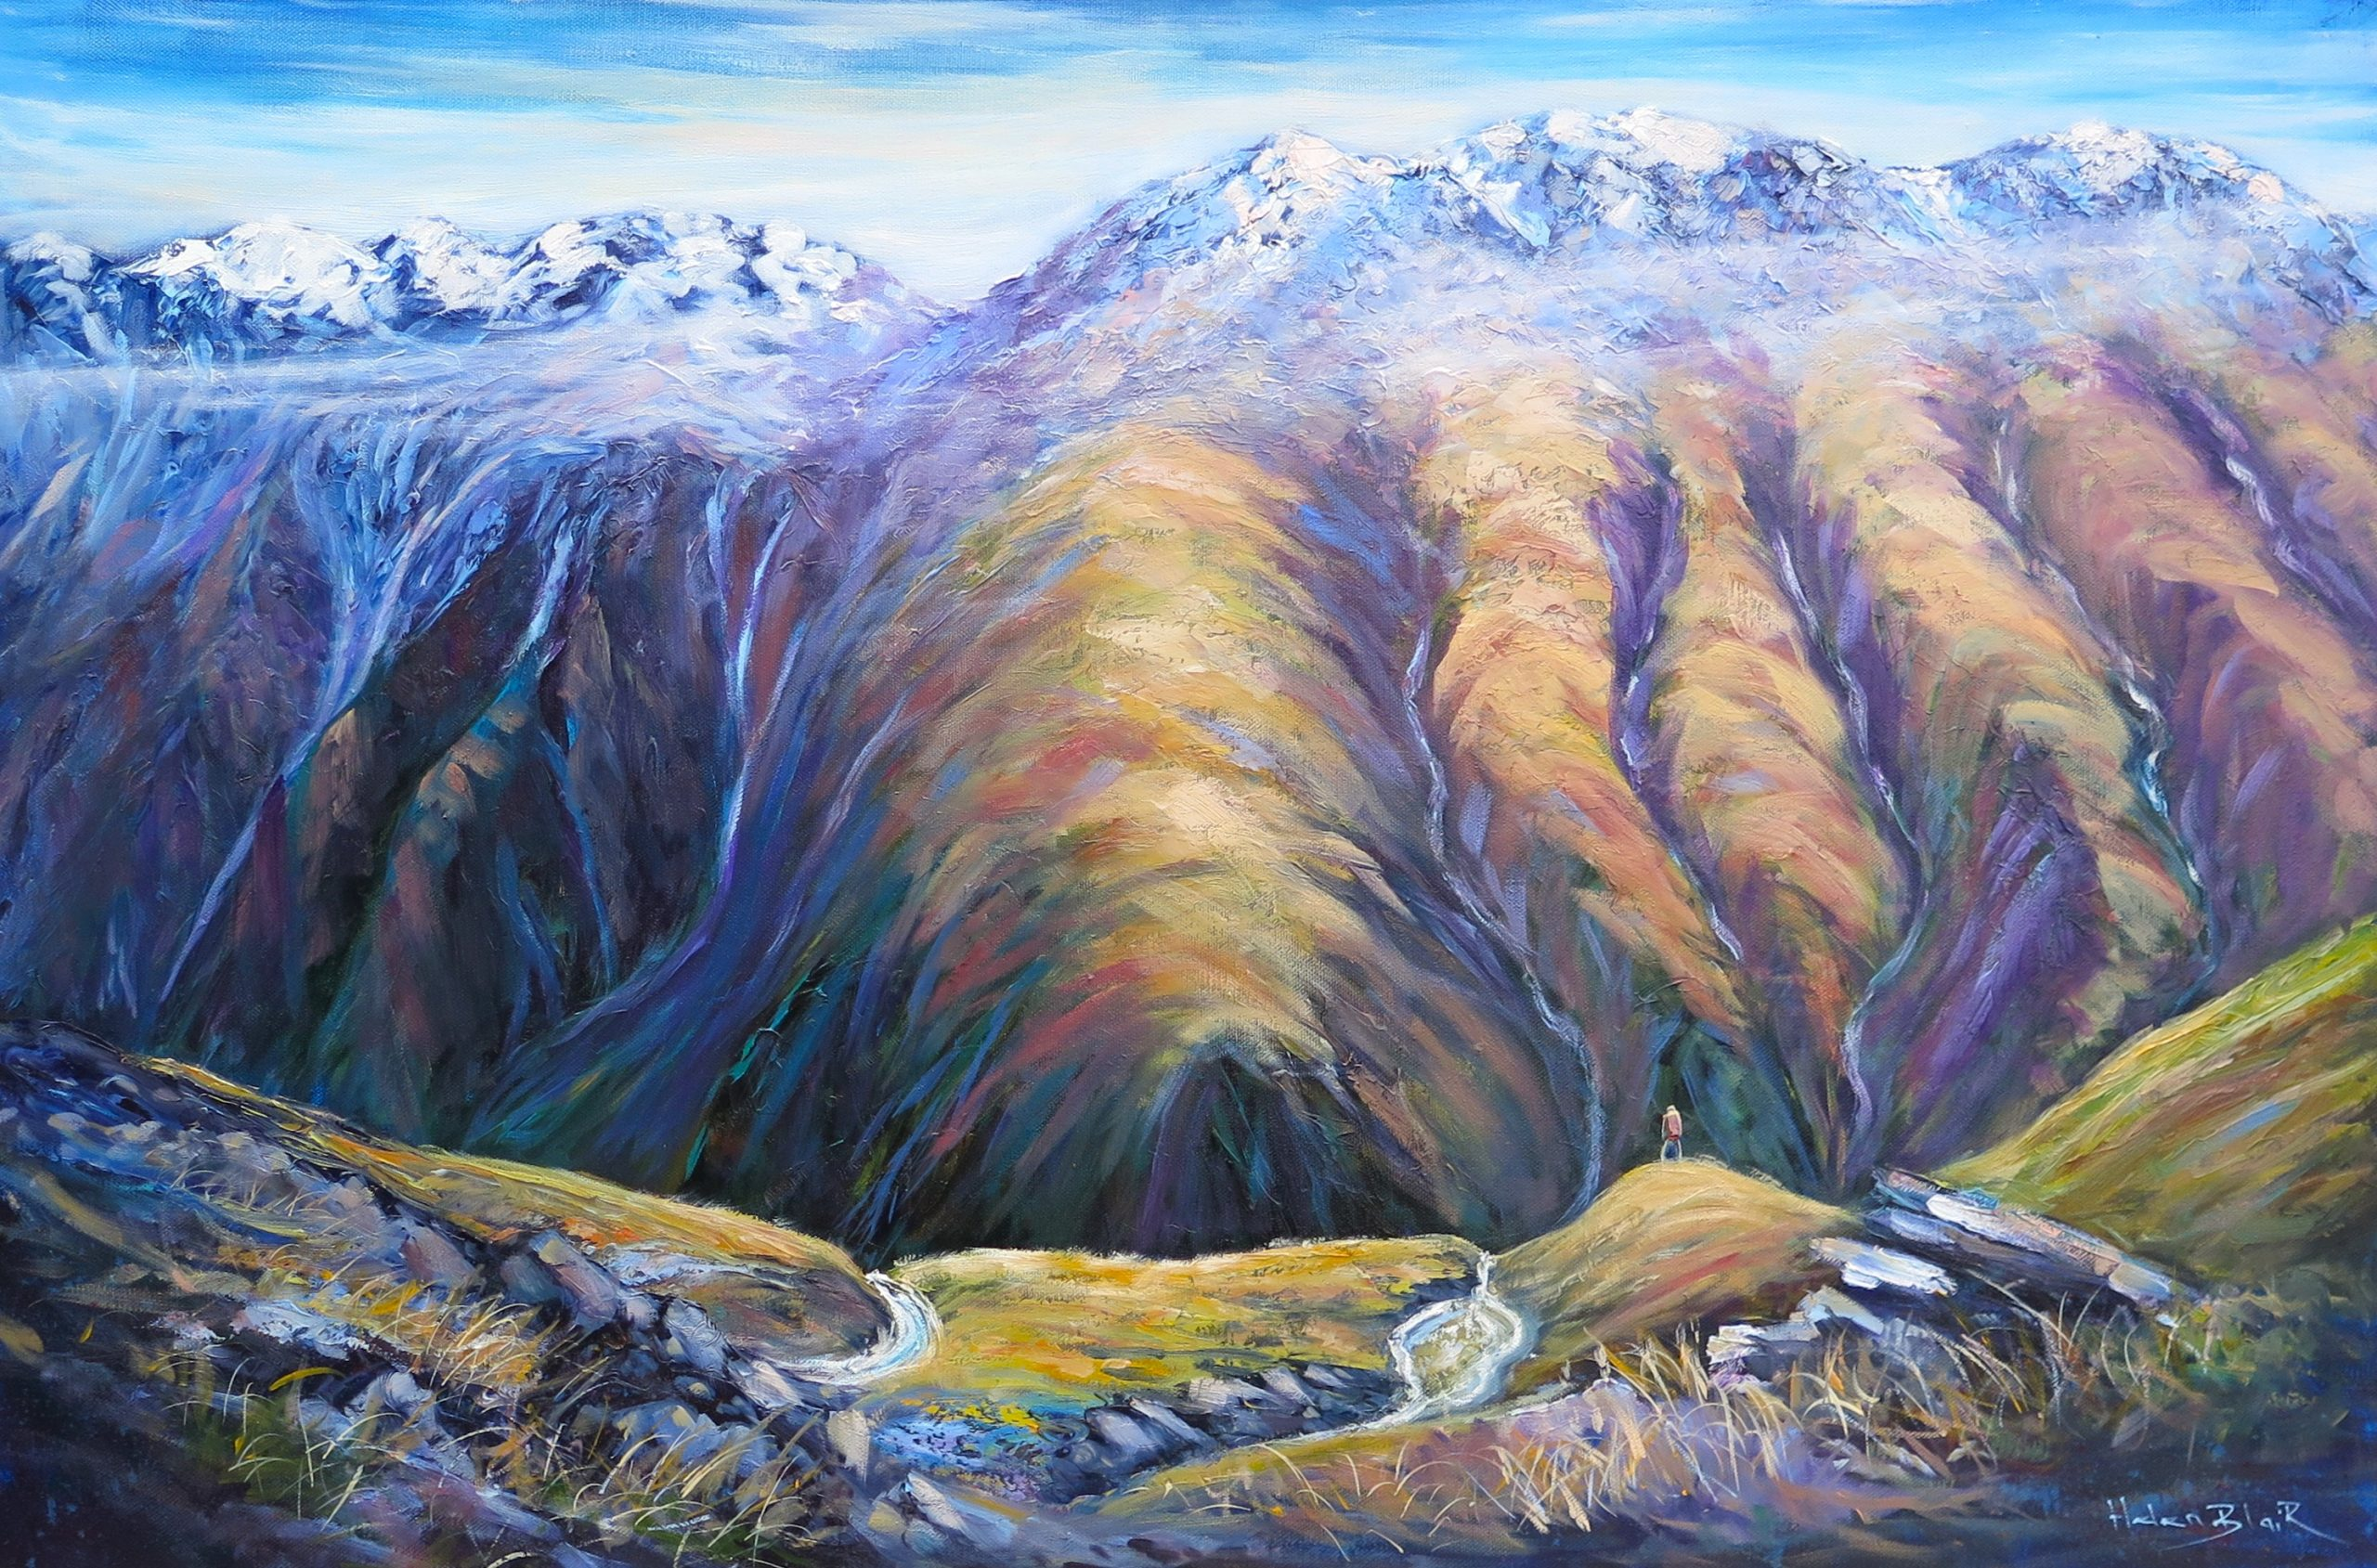 helenblairsart - Mountain Valley, Original Oil for sale